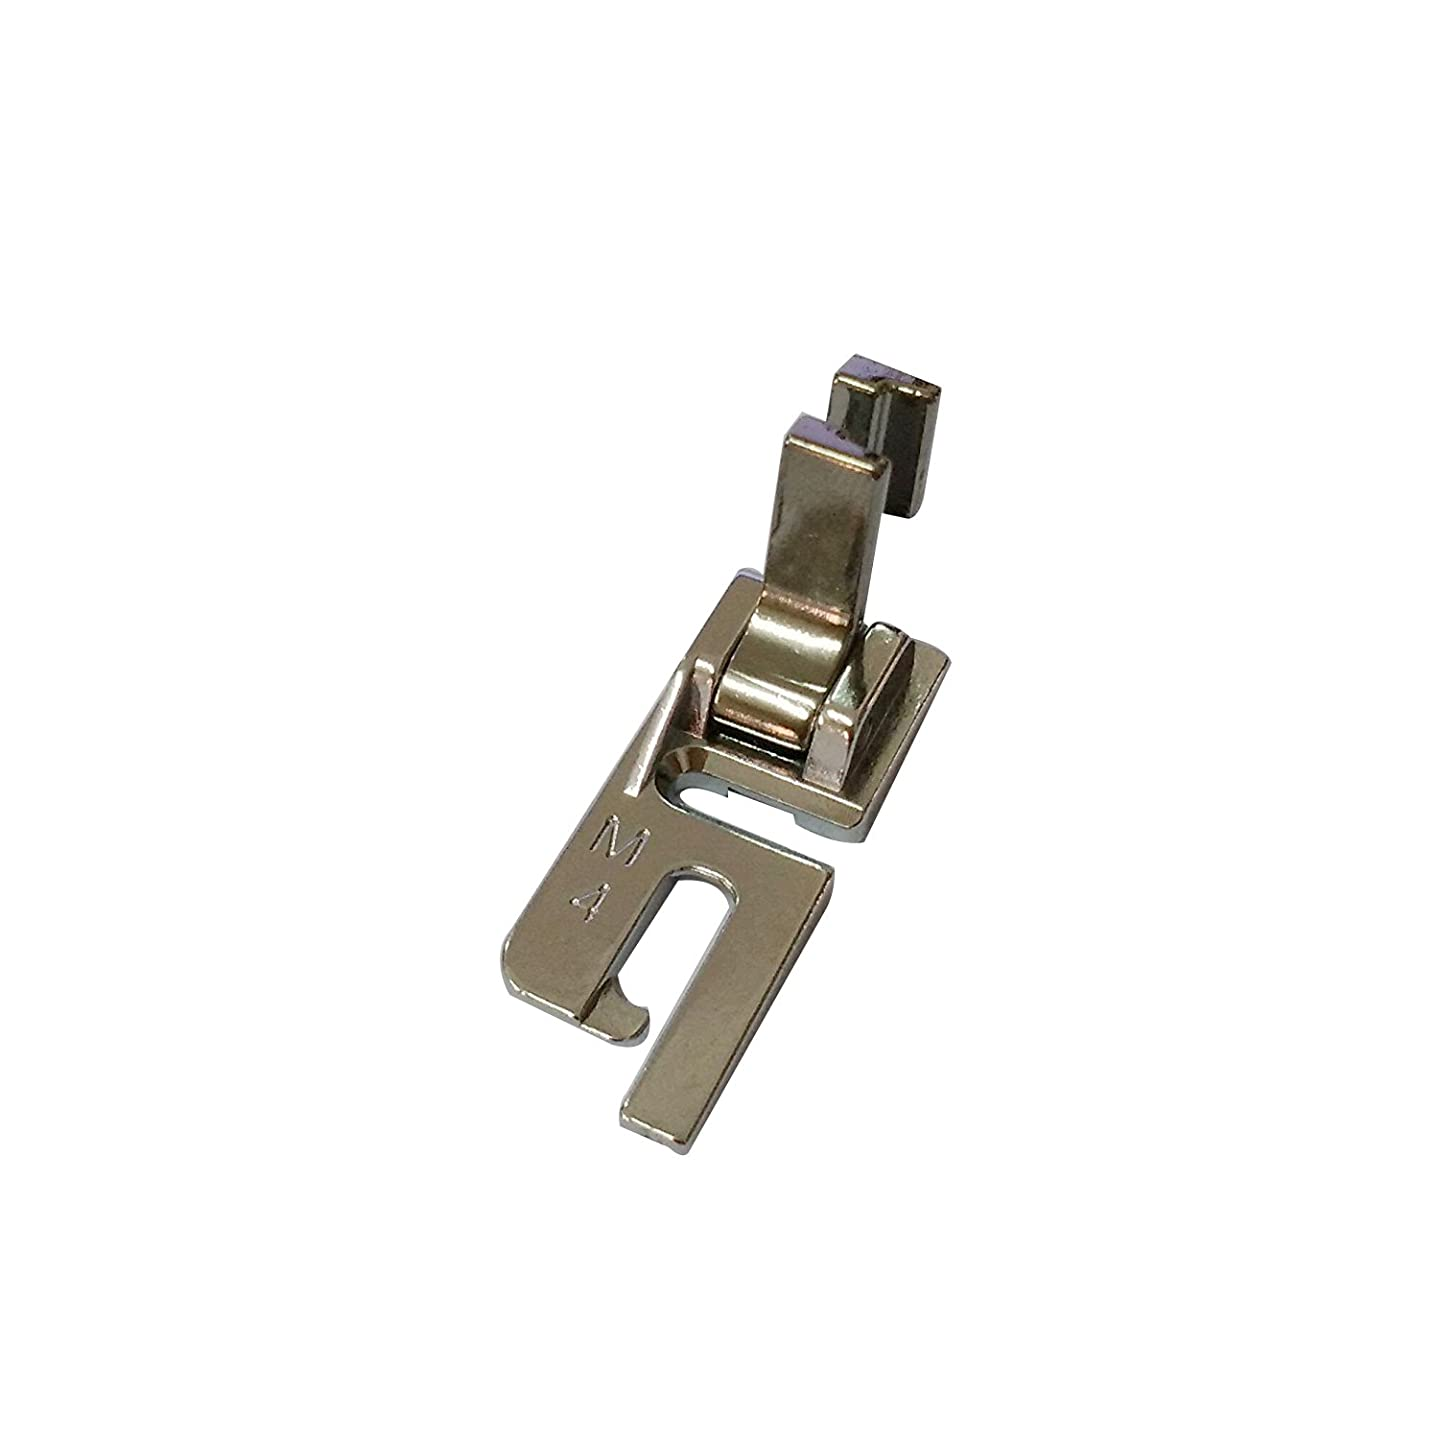 HONEYSEW PRESSER FOOT Universal Hinged Low Shank 4mm Felling FIT BROTHER NEW SINGER JANOME TOYOTA JUKI # P60960